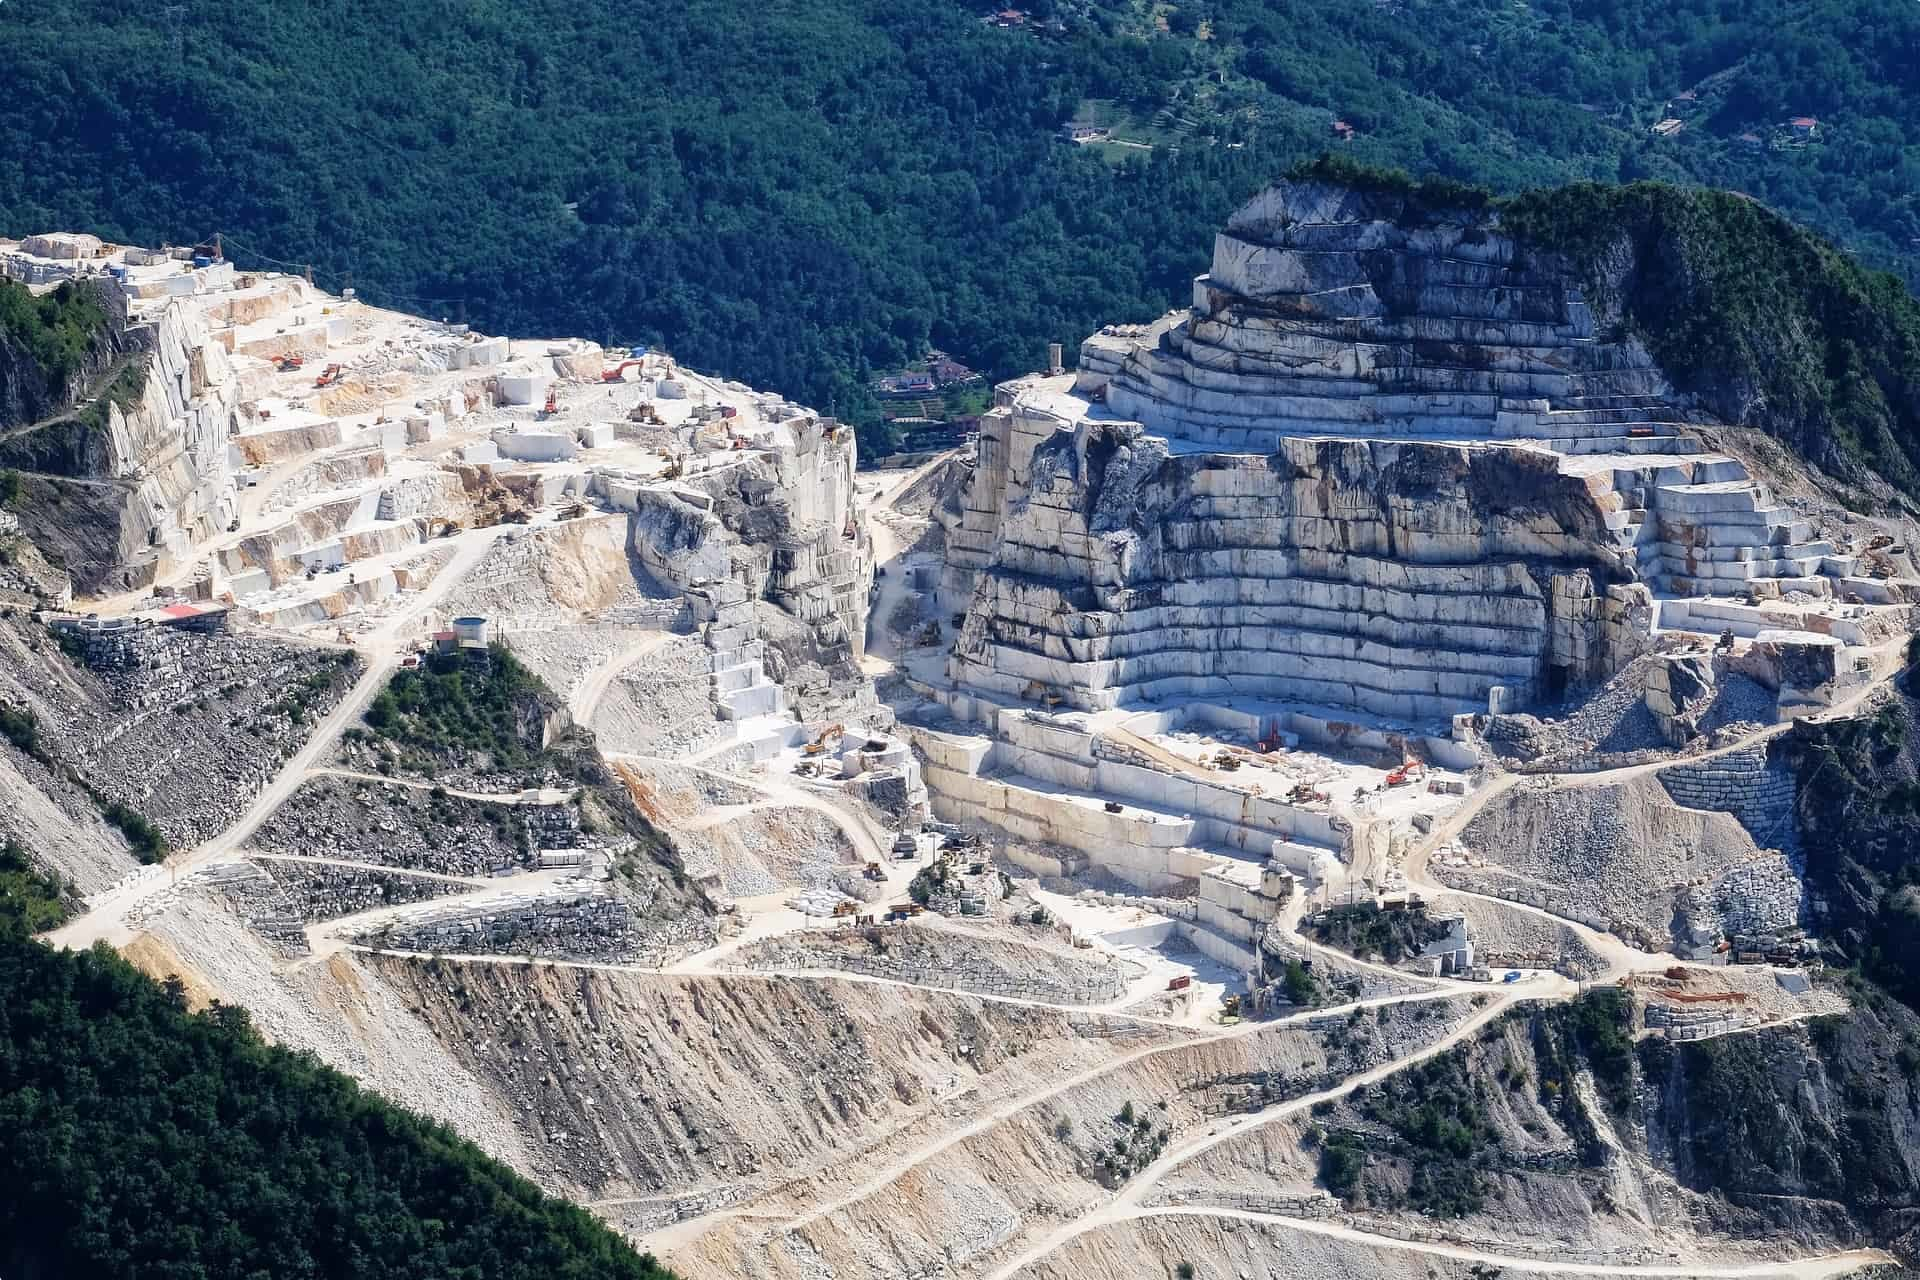 Carrara Marble quarry in Tuscany